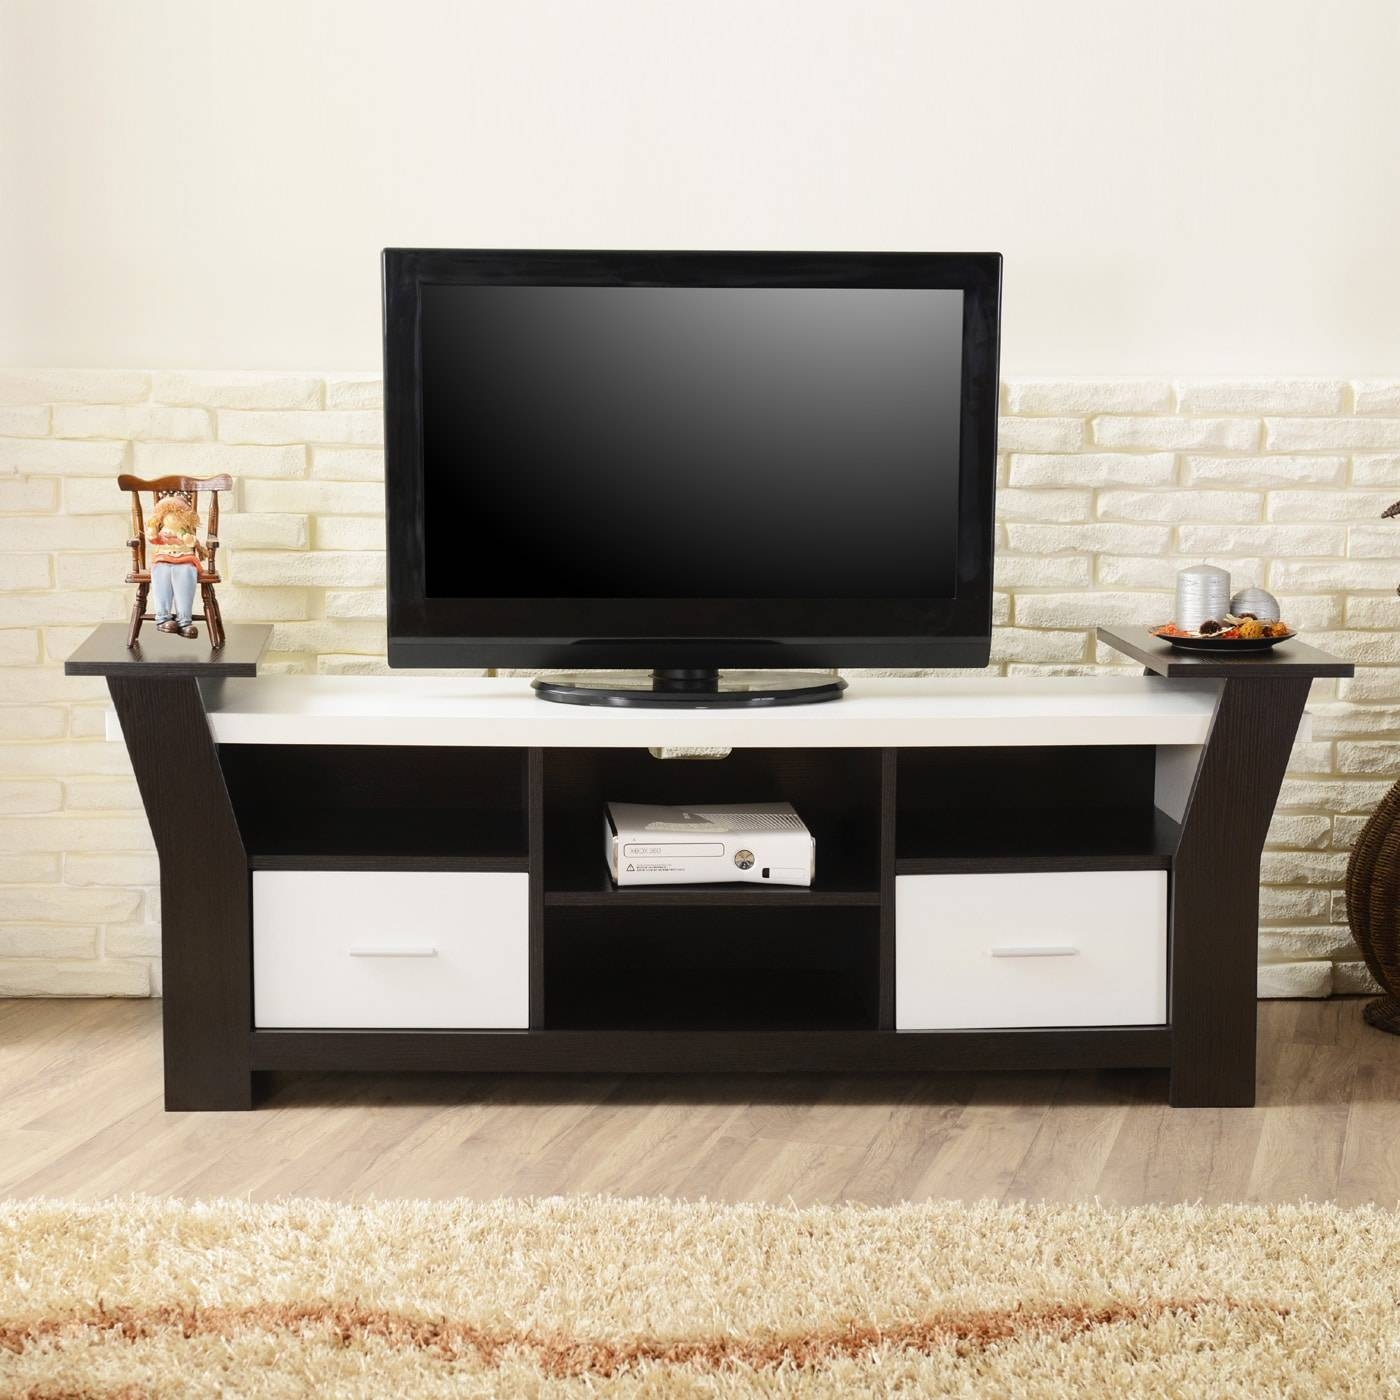 Enitial Lab Fci-13 Chester 66-In Multi-Storage Tv Stand | The Mine with Storage Tv Stands (Image 6 of 15)